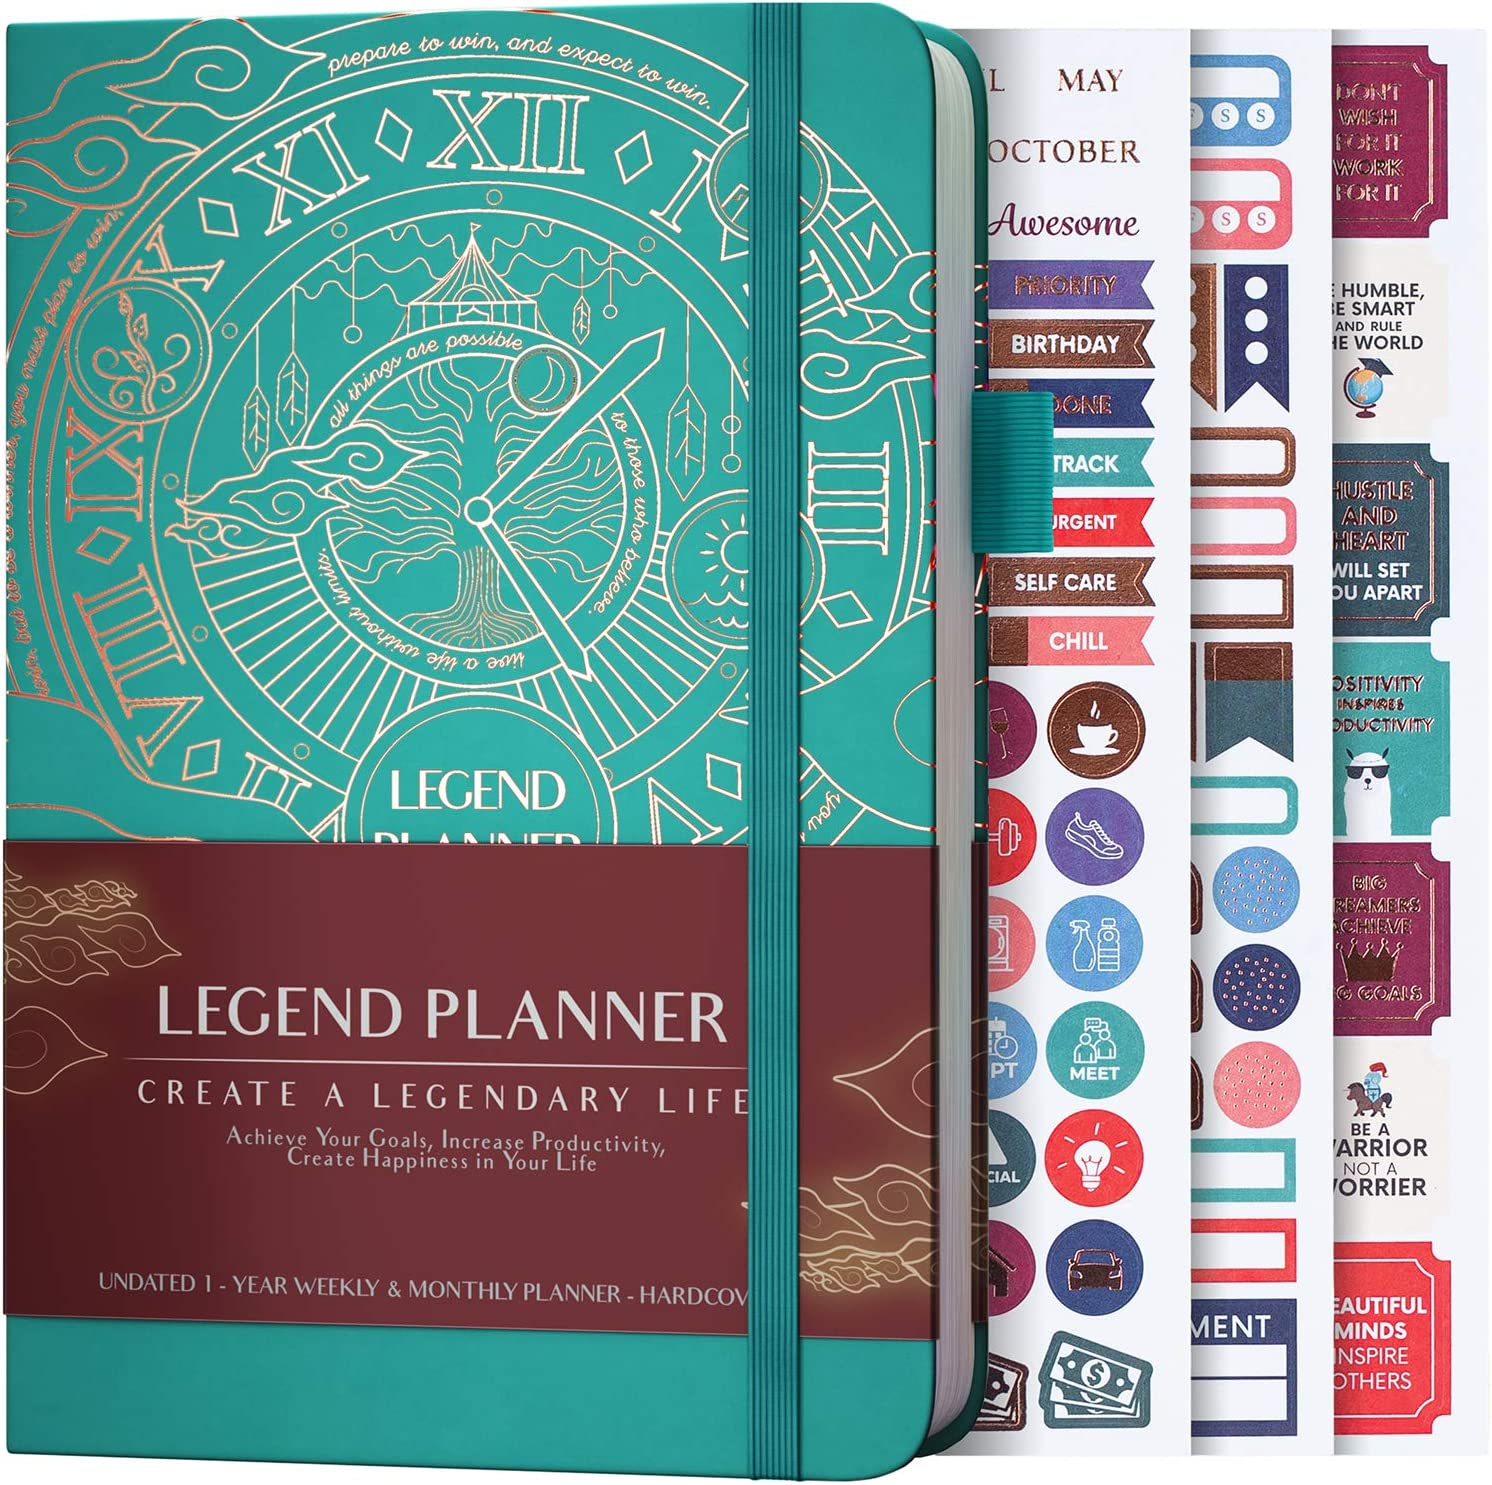 Legend Planner - Deluxe Weekly & Monthly Life Planner to Hit Your Goals & Live Happier. Organizer Notebook & Productivity Journal. A5 Hardcover, Undated - Start Any Time + Stickers-Viridian Green Gold